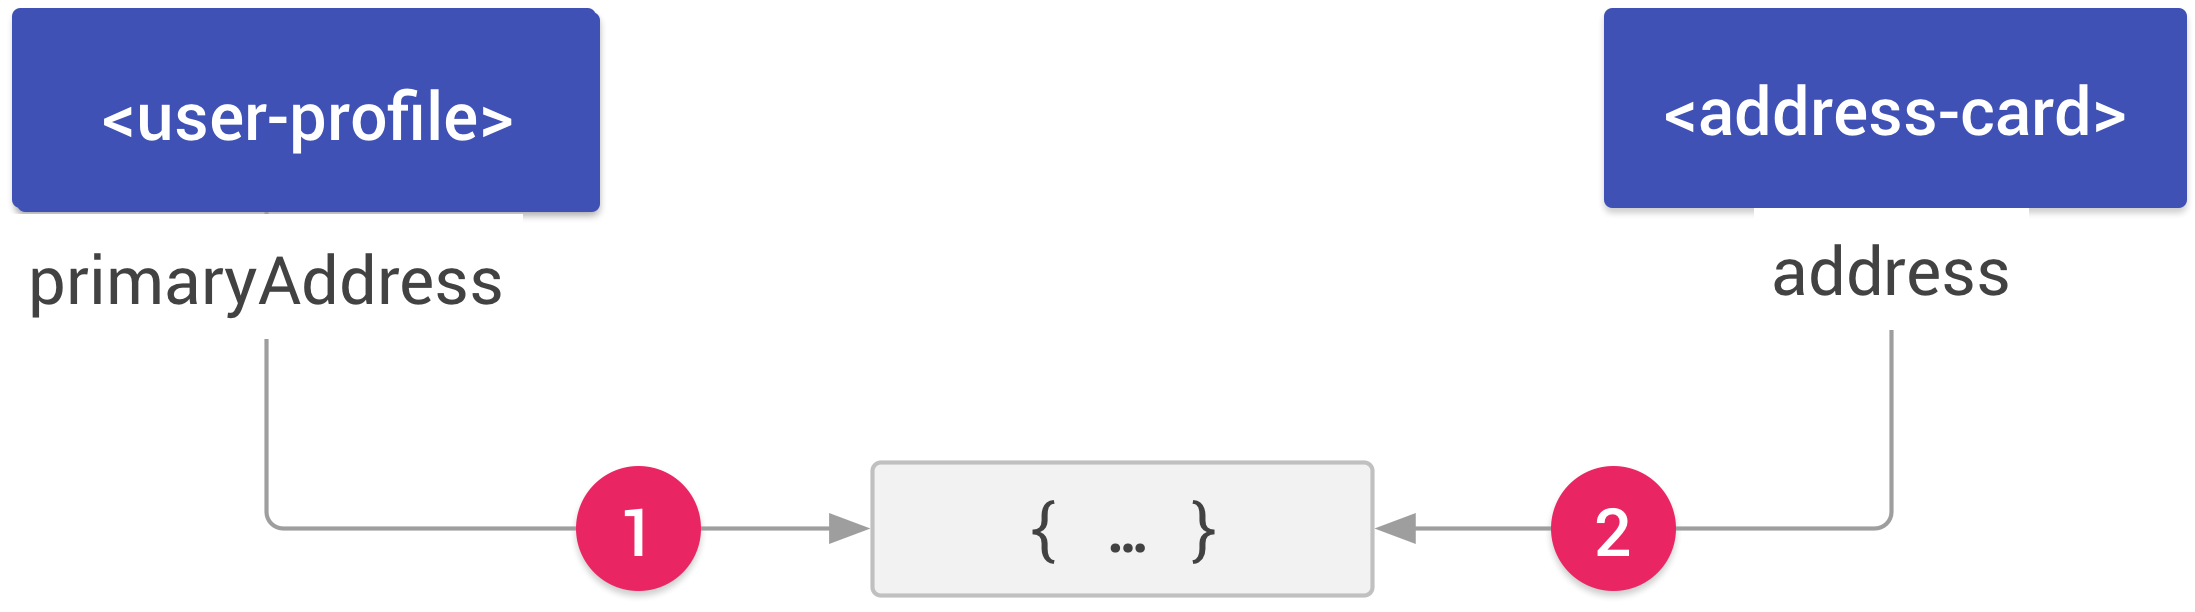 Two elements, user-profile and address card. The user-profile element has a primaryAddressproperty. An arrow labeled 1 connects the property to a JavaScript object. The address-cardelement has an address property. An arrow labeled 2 connects the property to the same JavaScriptobject.